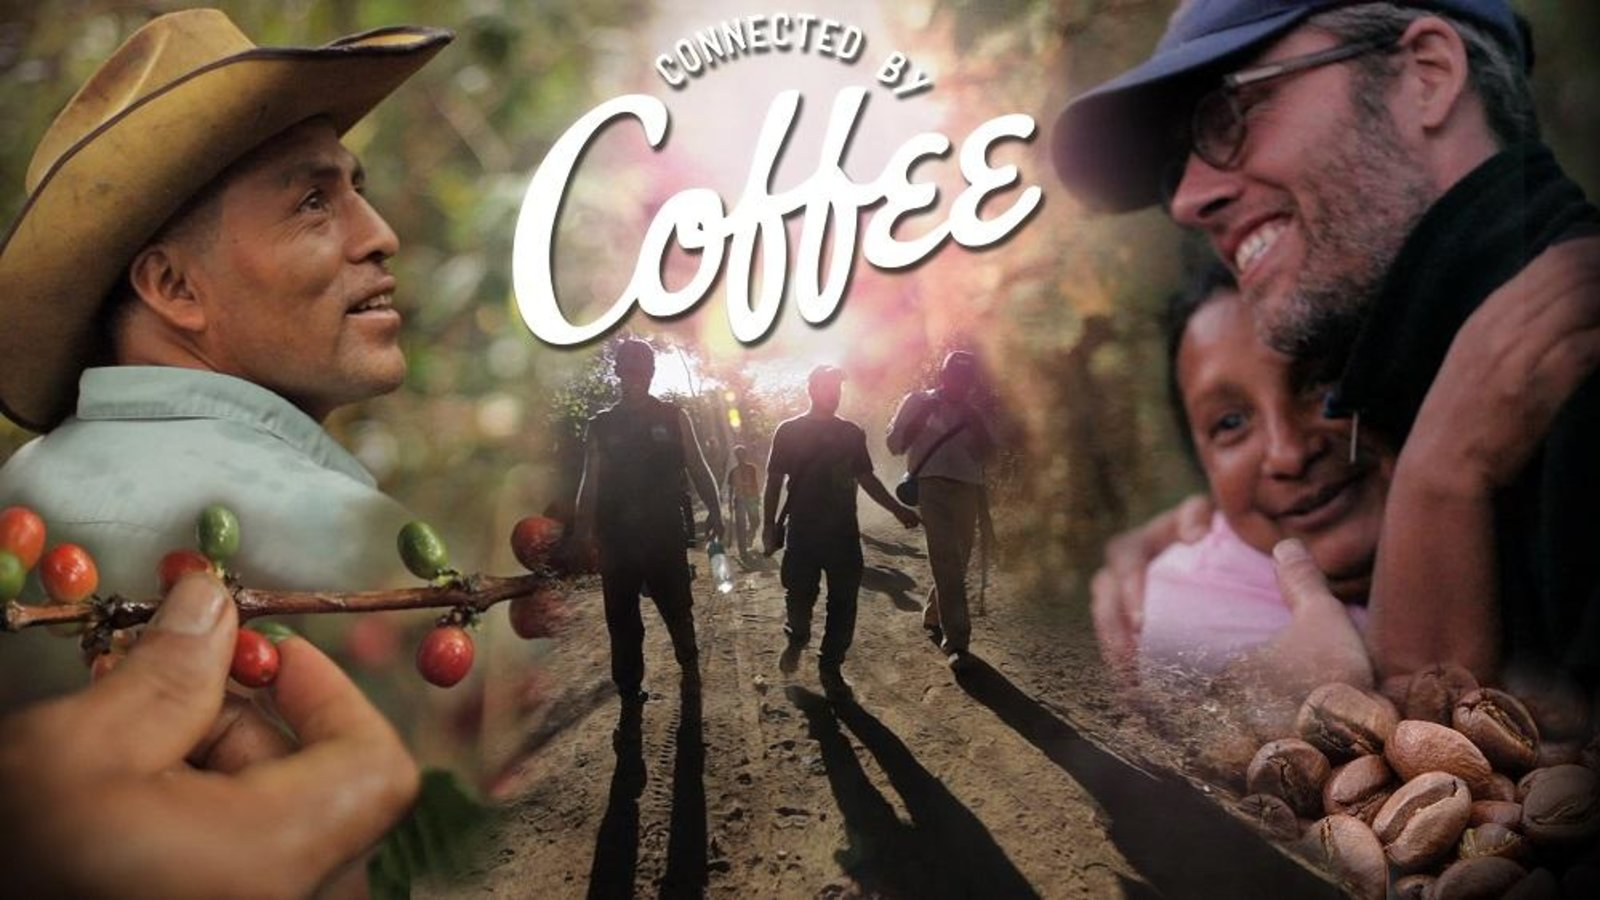 Connected by Coffee - Latin American Coffee Farmers